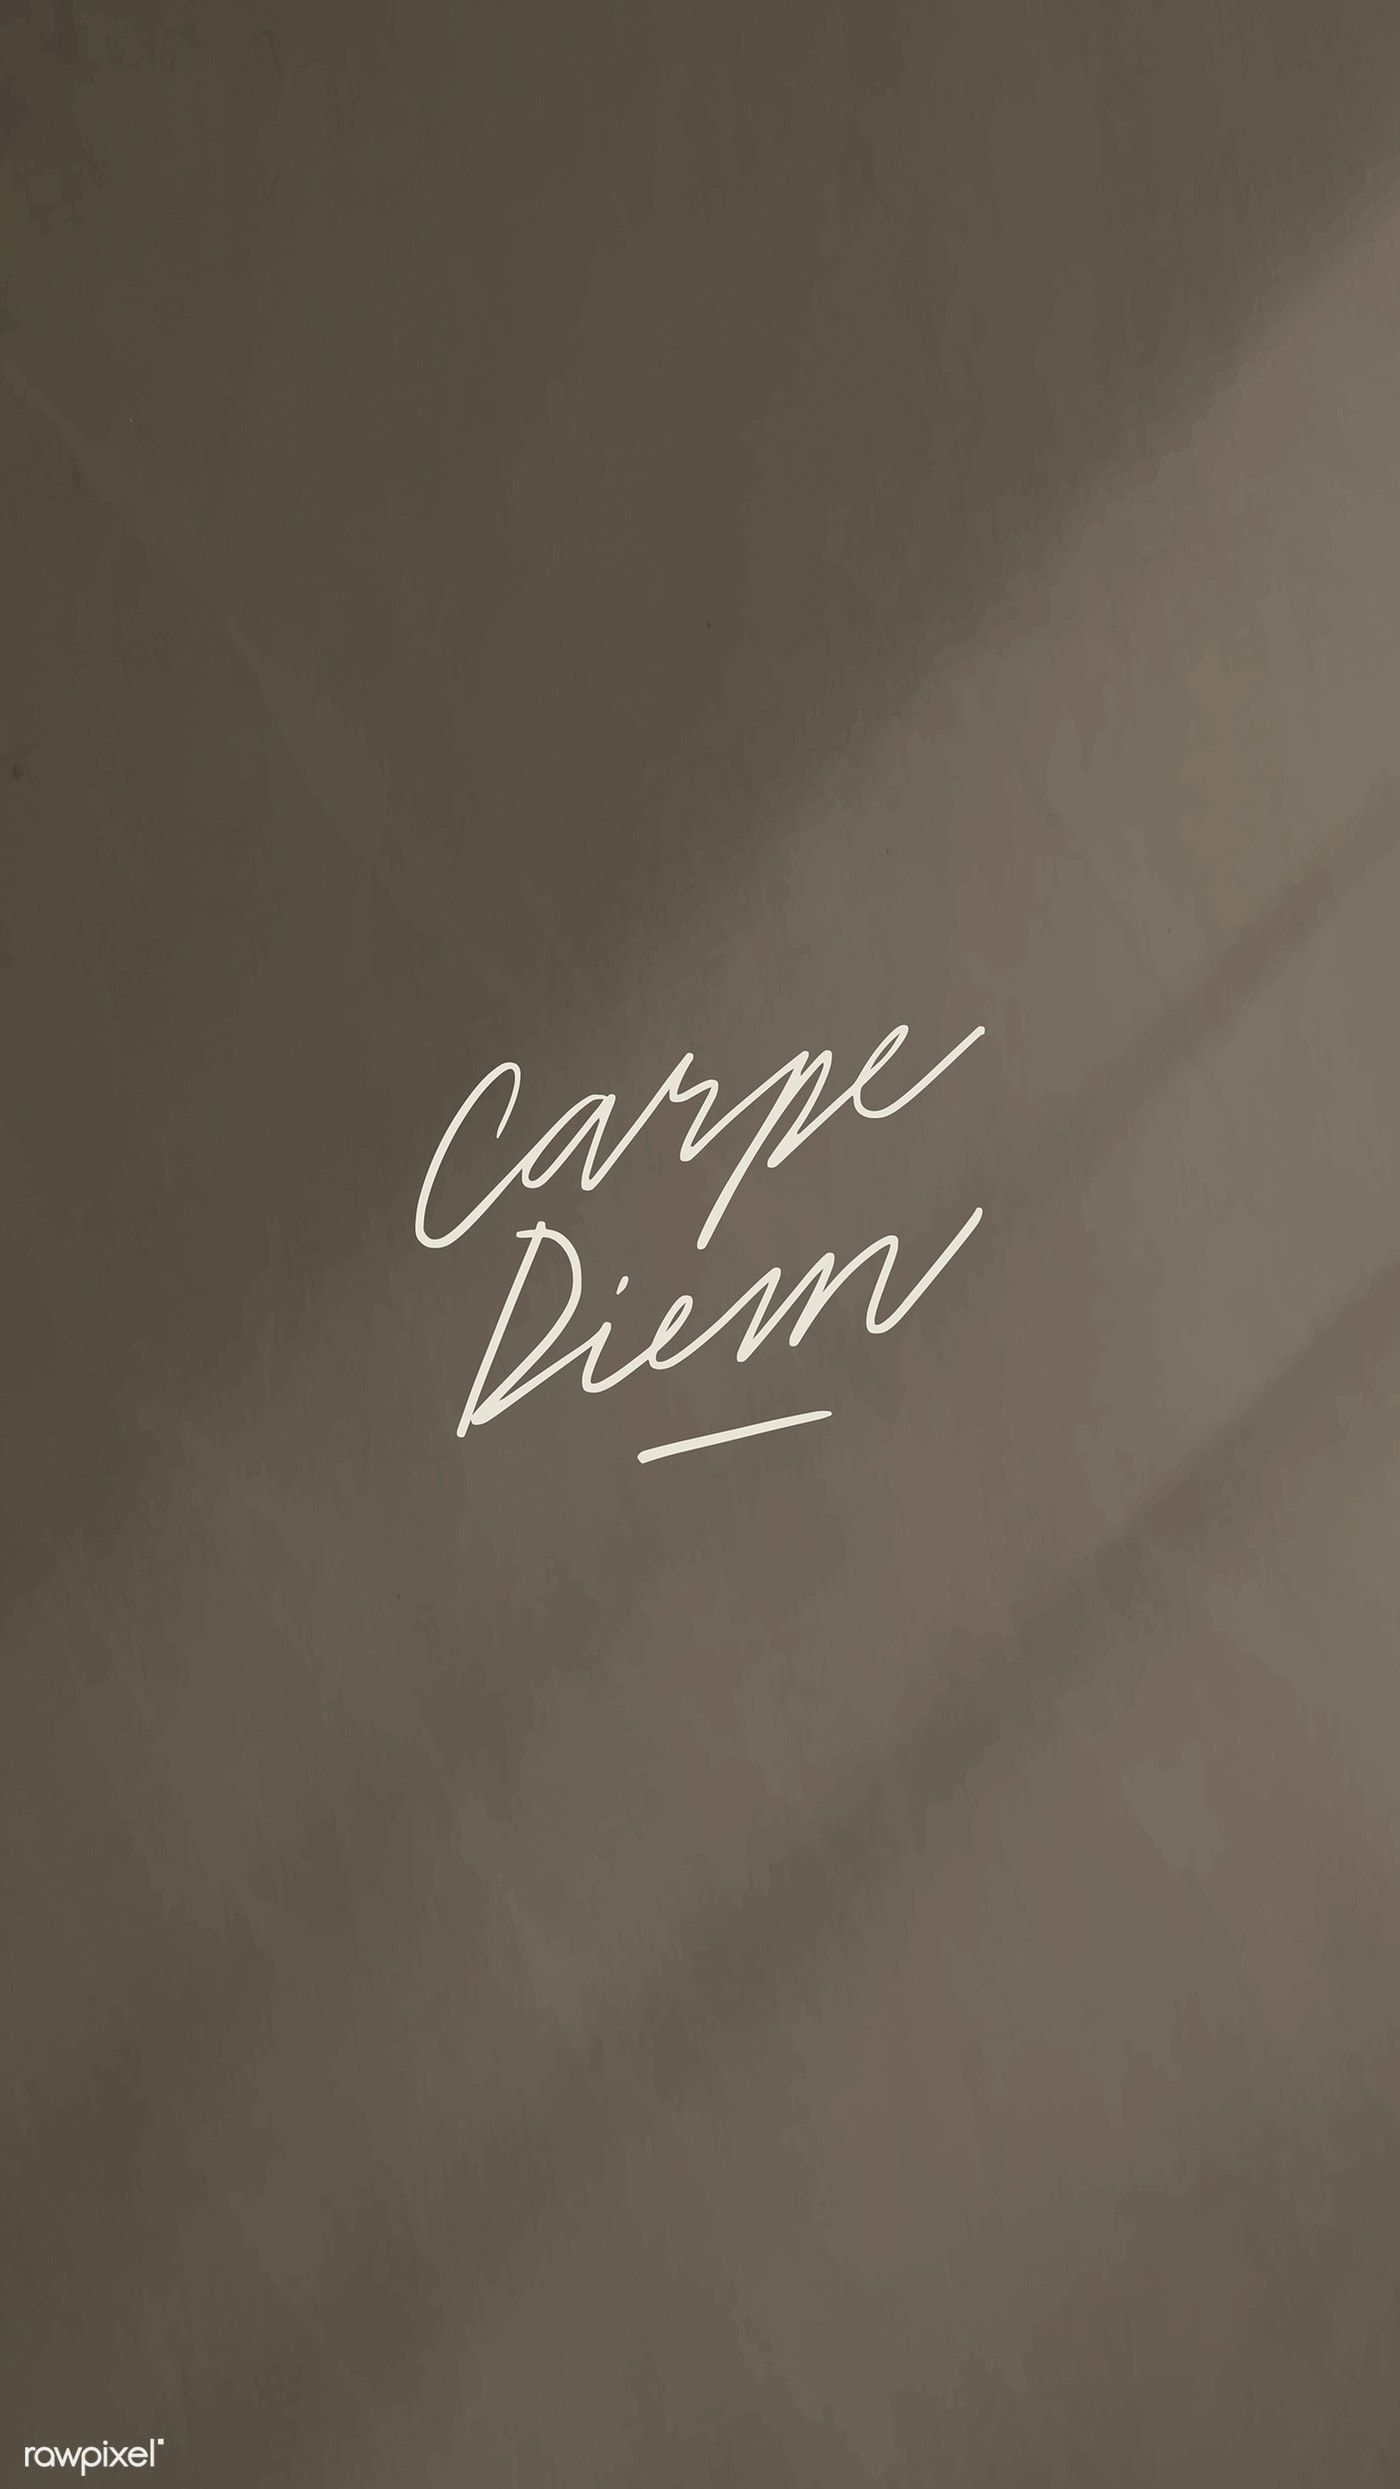 Download free vector of Carpe diem on a black background vector  by katie about quote background, illustration minimal, type, today, and inspirational quote 2041756